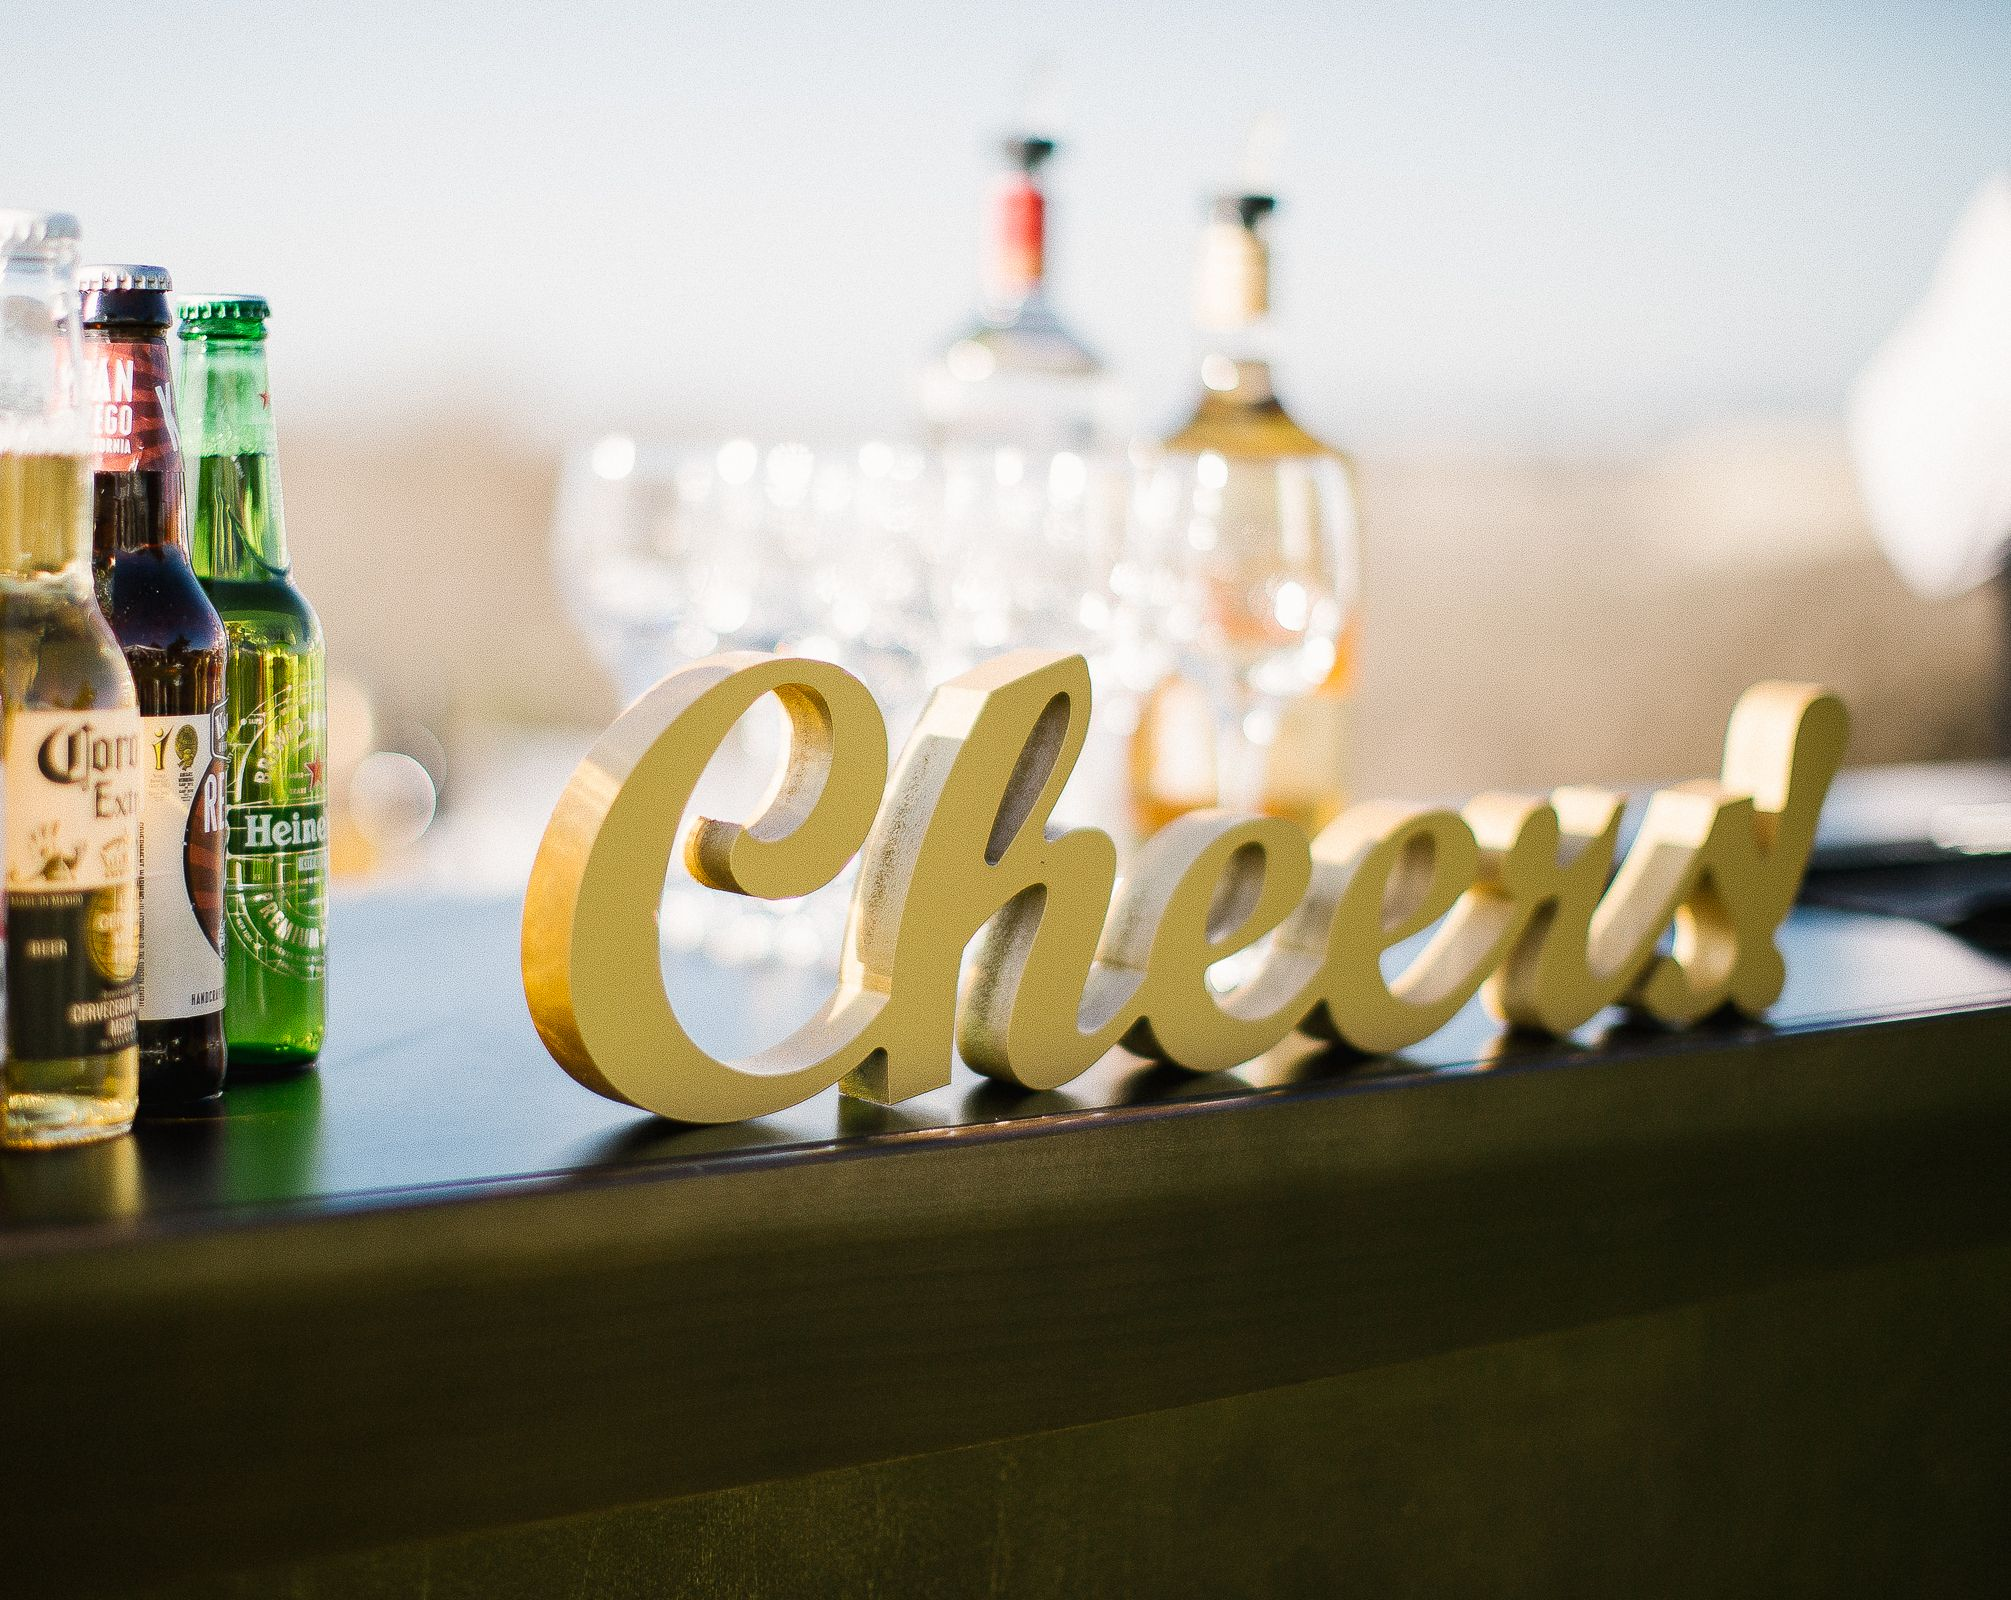 Cheers wedding sign or party sign for bar reception drink